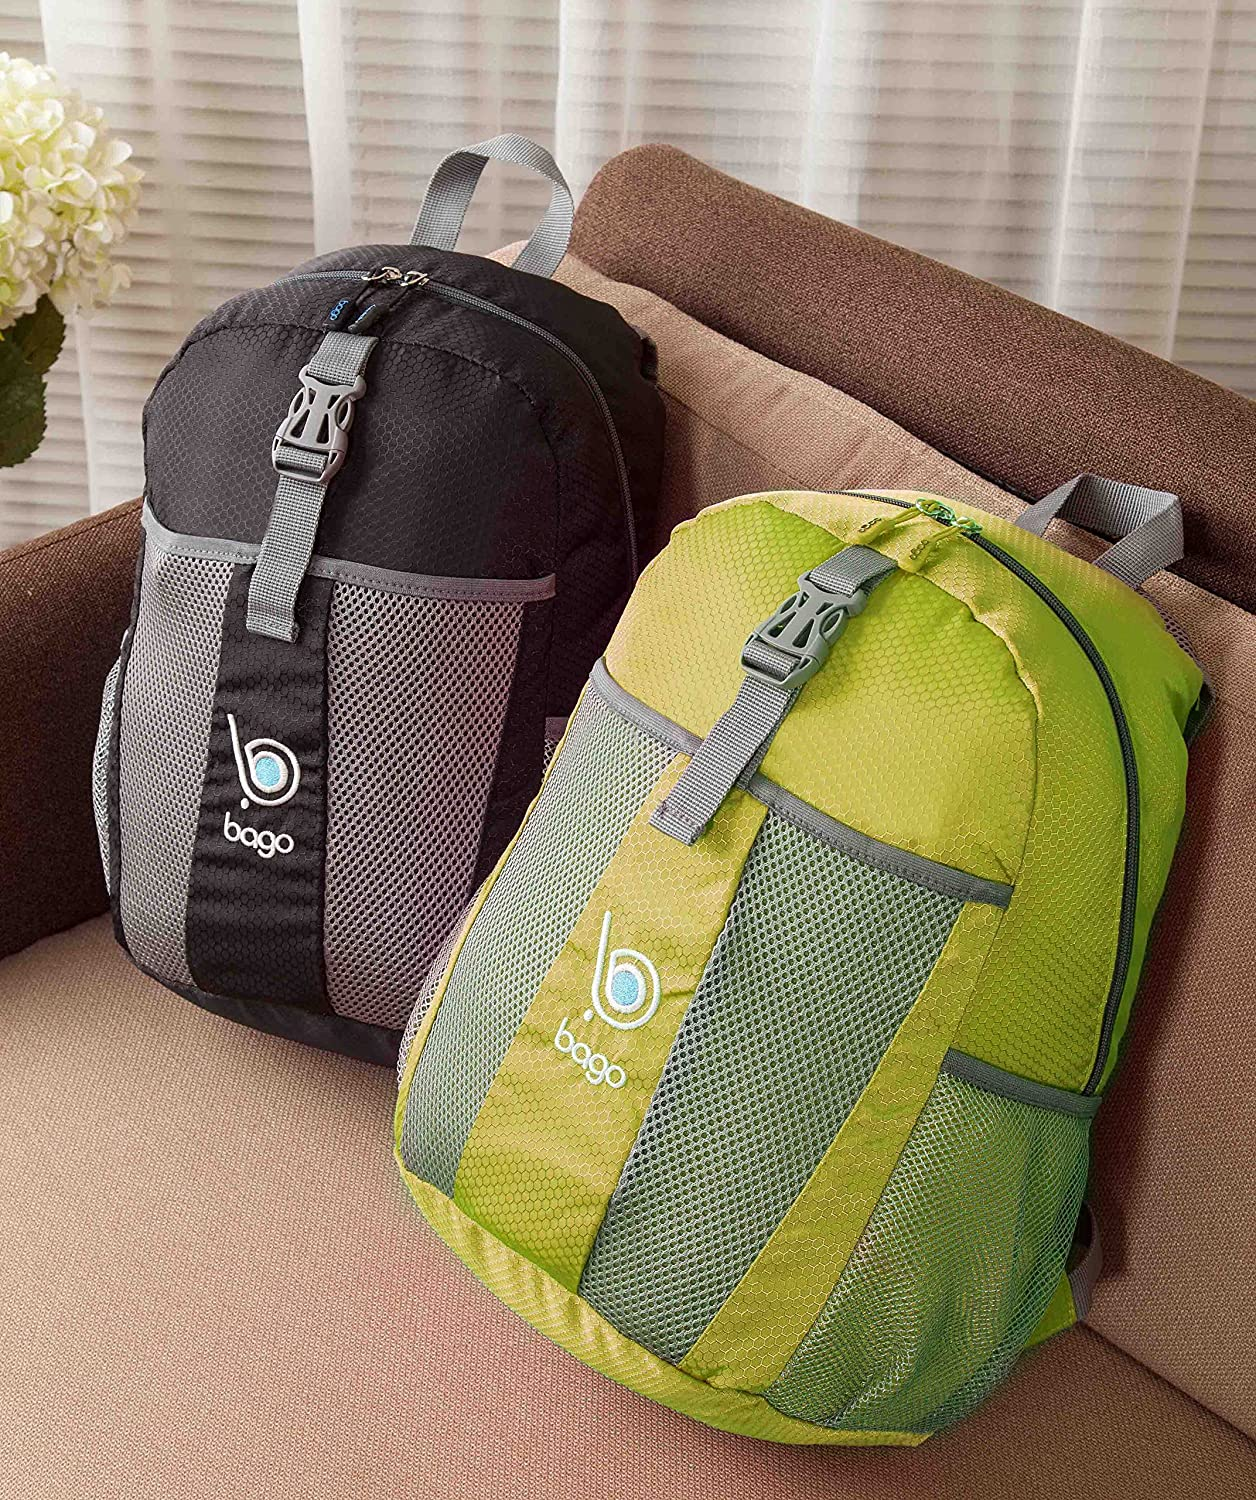 bago 25L Packable Lightweight Backpack Water Resistant Travel and Hiking Daypack